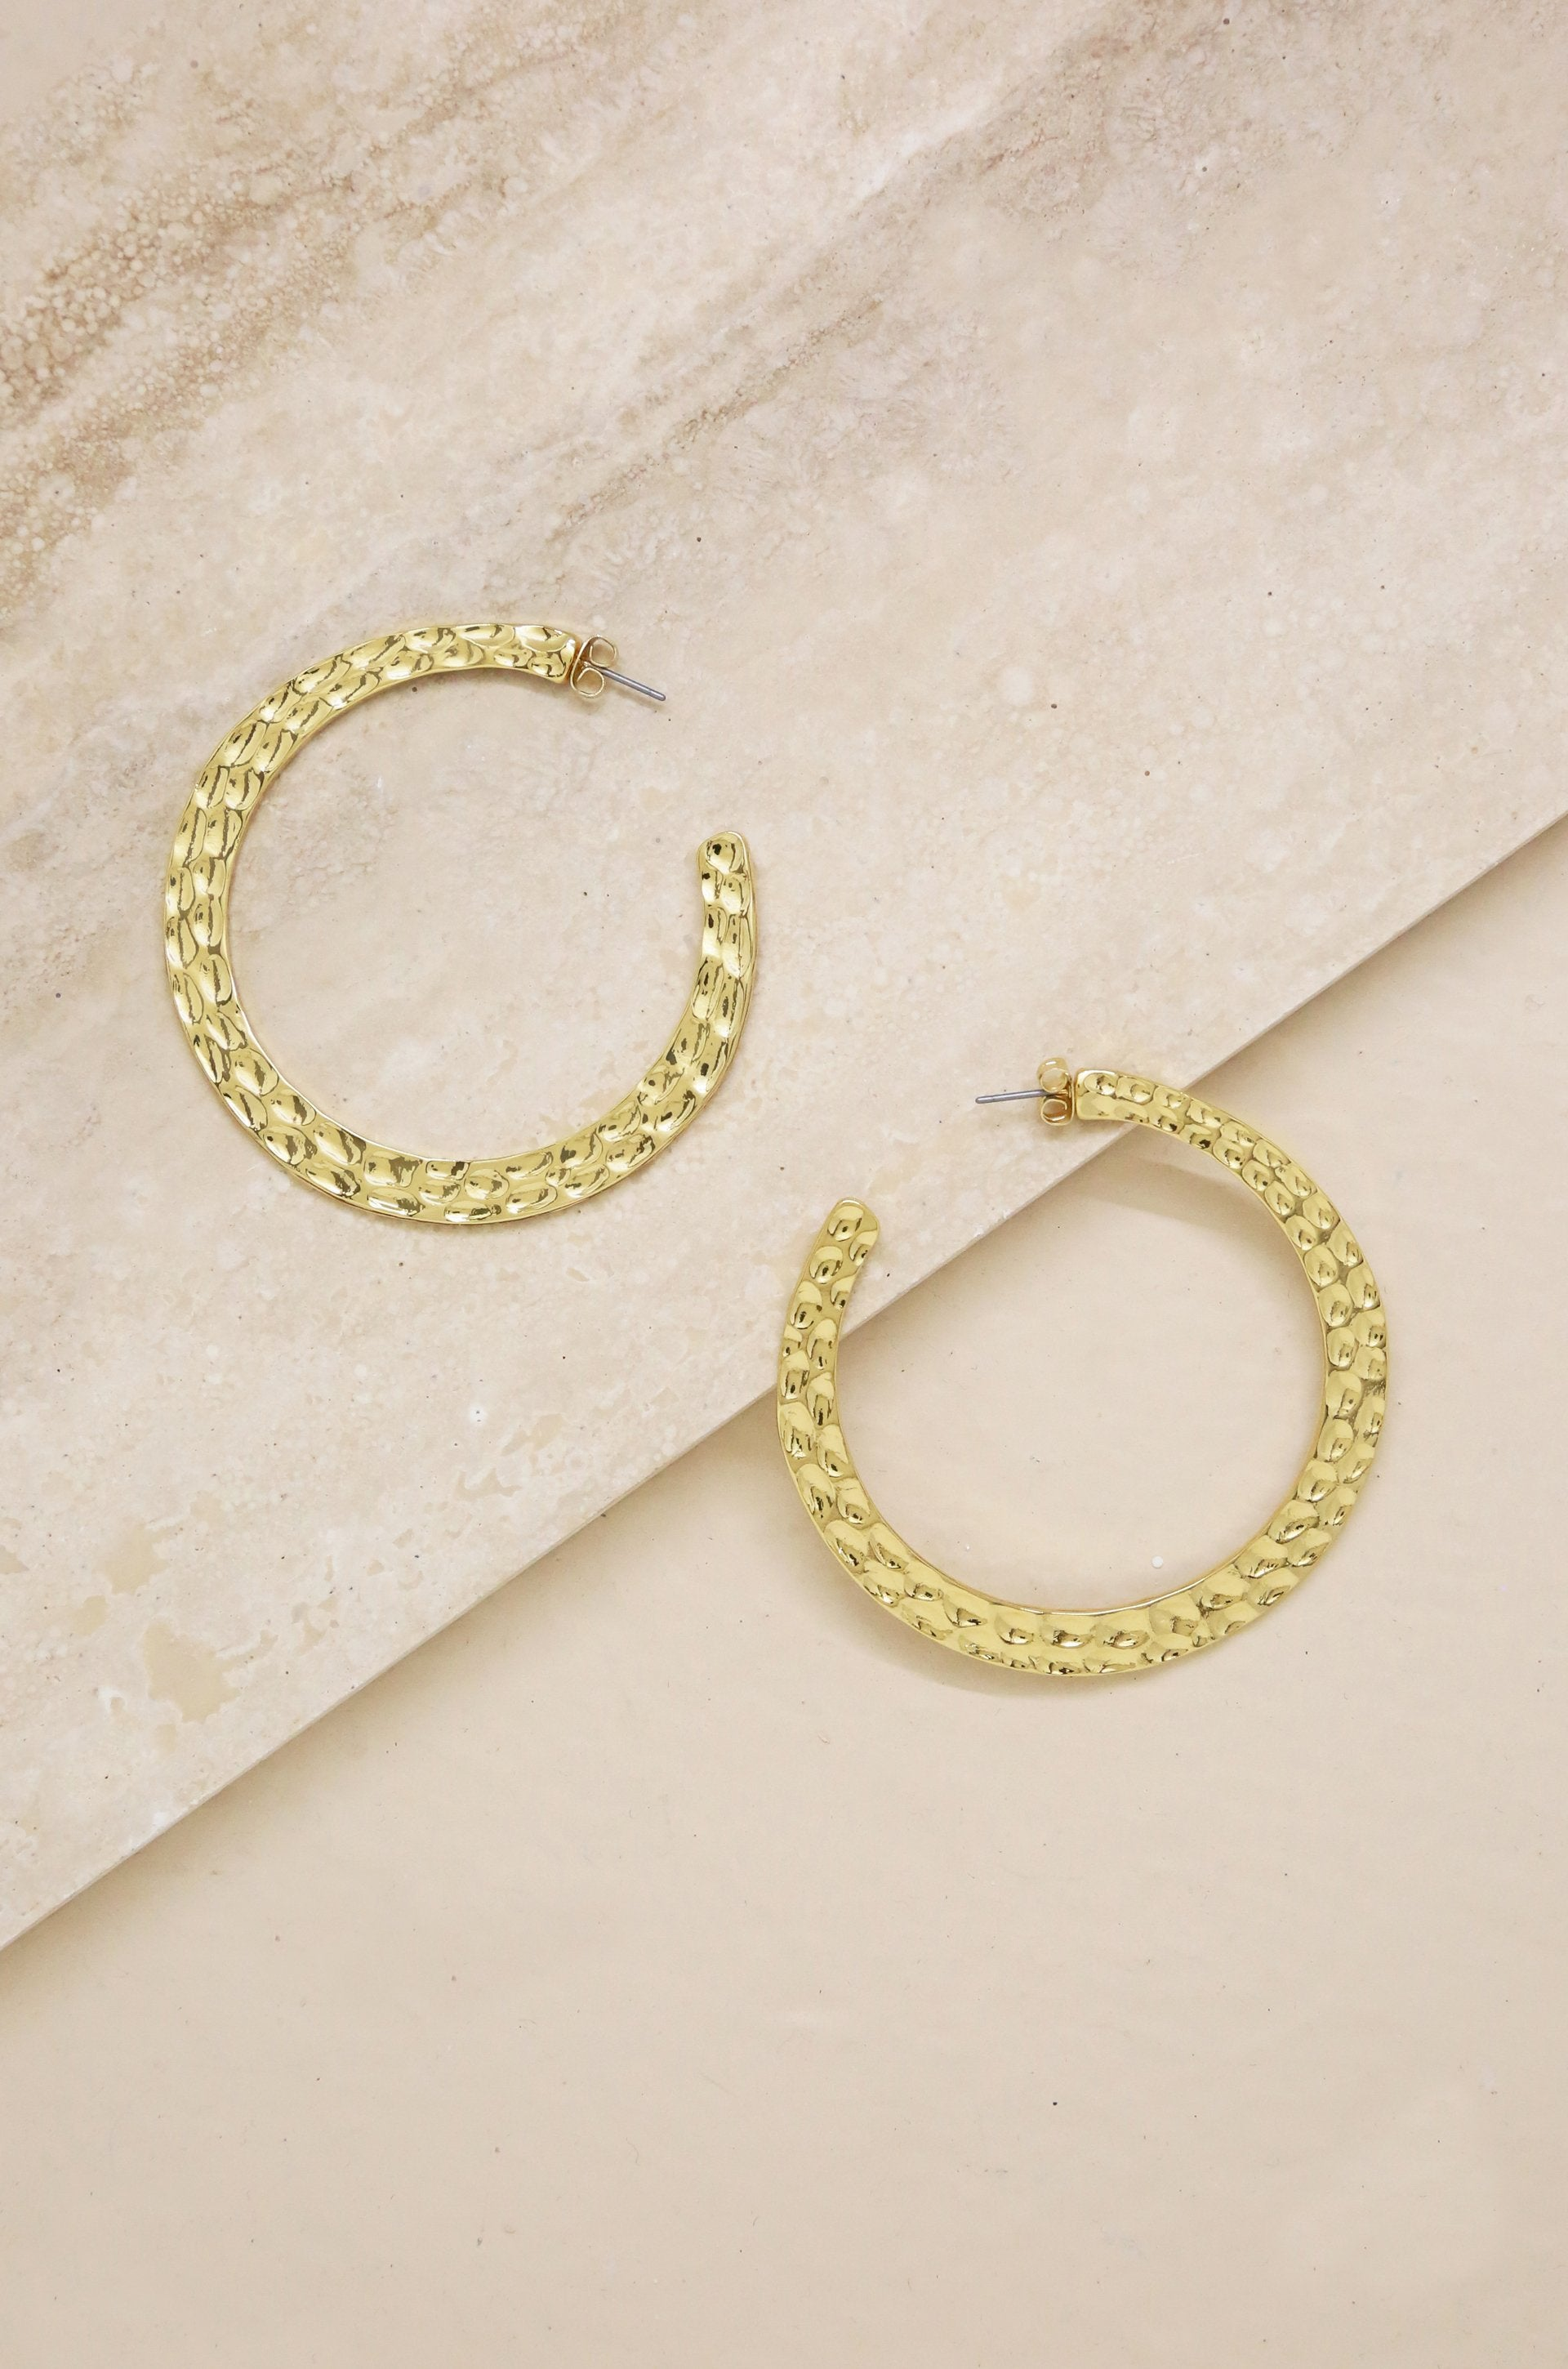 Hammered 18k Gold Plated Hoop Earrings - Vanessa Stylez Boutique